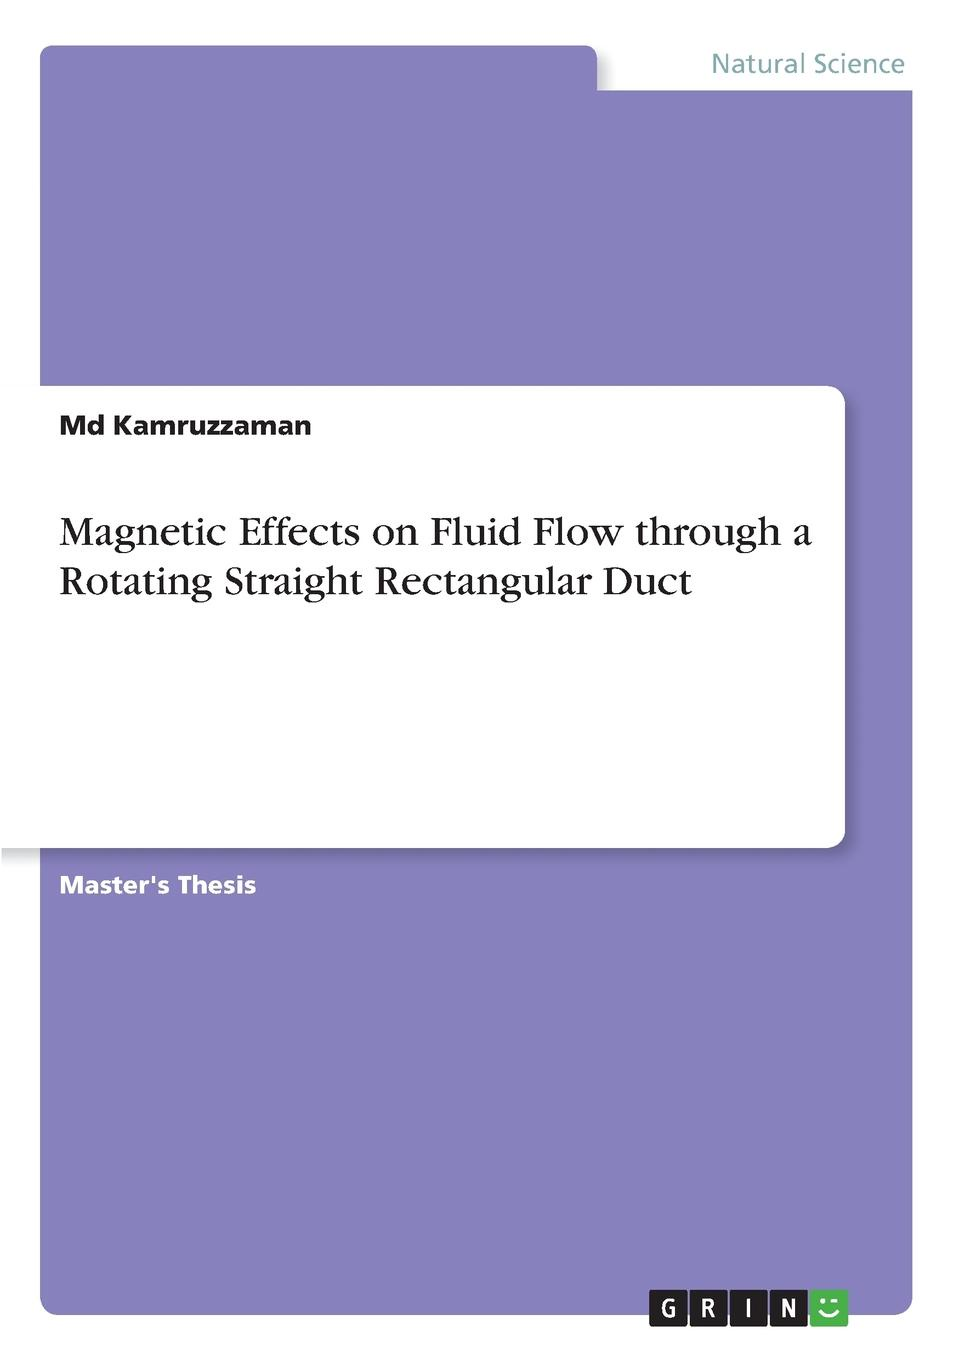 Md Kamruzzaman Magnetic Effects on Fluid Flow through a Rotating Straight Rectangular Duct zwittrionic surfactants flow enhancment in solid liquid flow systems